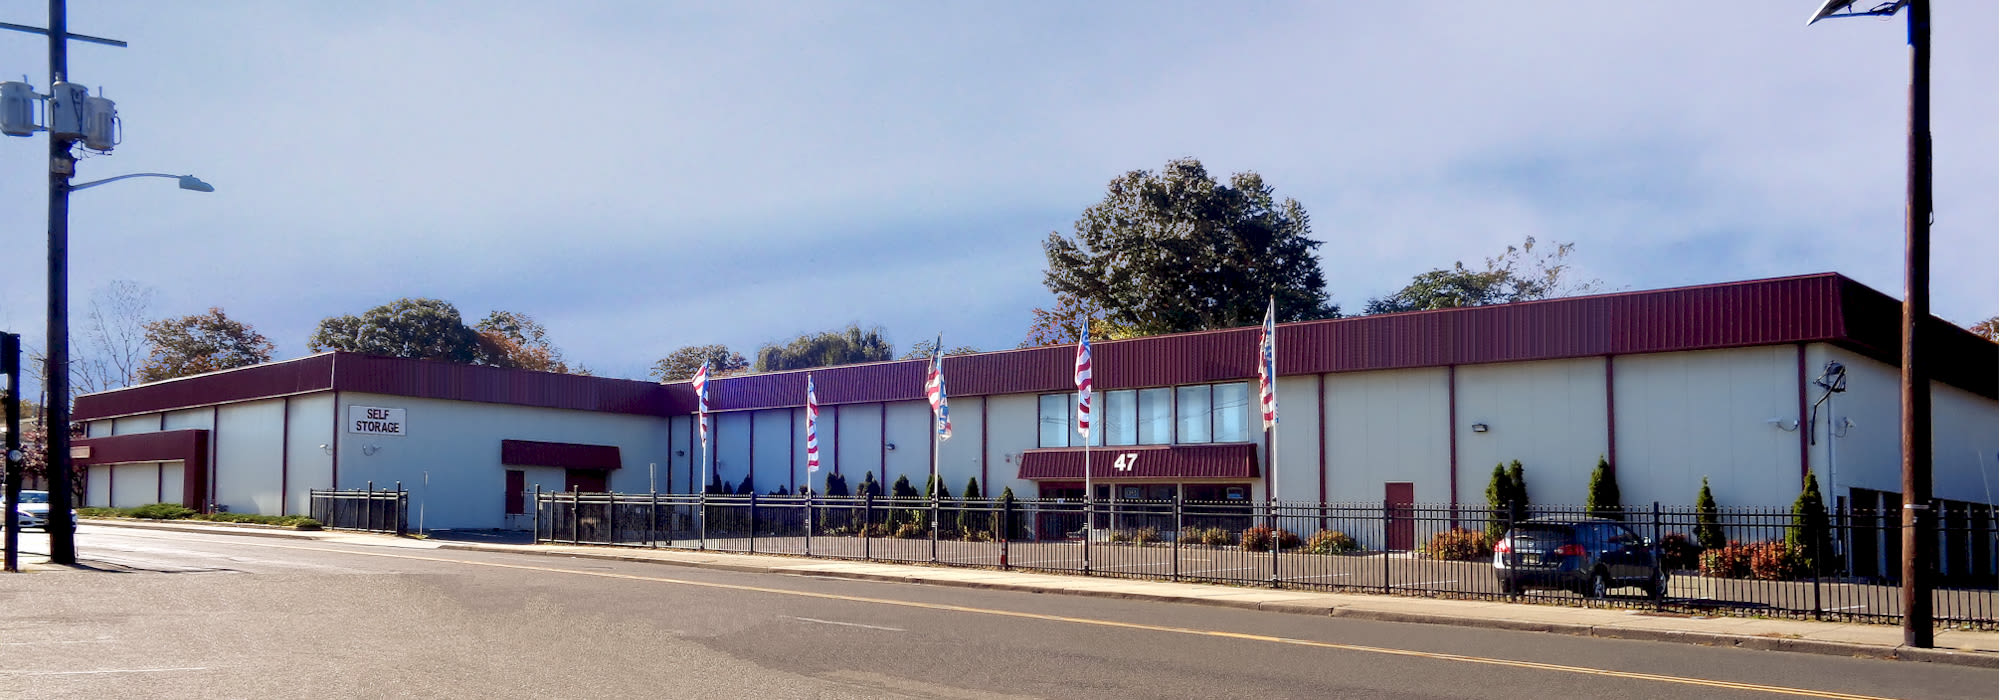 Prime Storage in Clifton, New Jersey